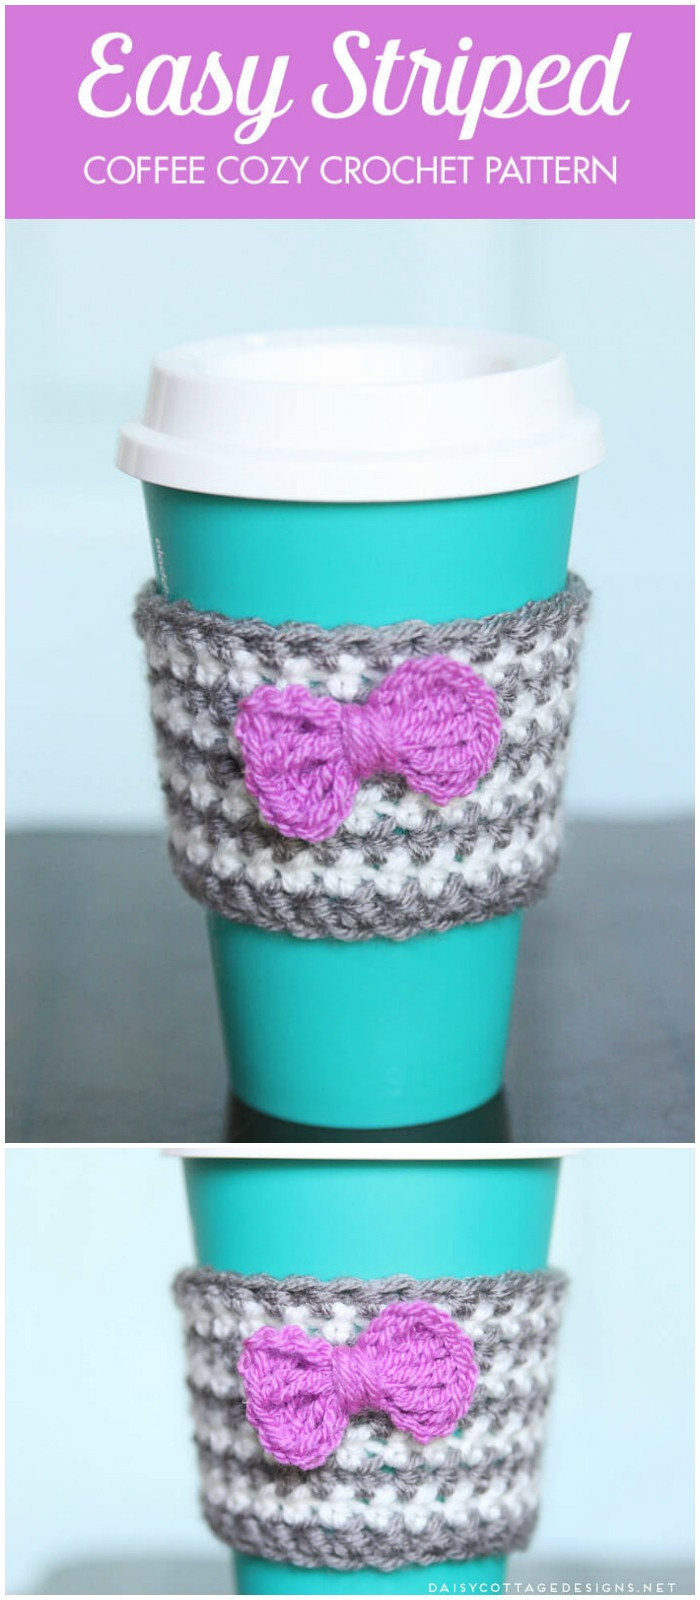 Crochet Coffee Cup Cozy Fresh 8 Crochet Cozy Patterns Free Crochet Patterns • Diy Home Of Crochet Coffee Cup Cozy Awesome Free Mug Cozy Crochet Patterns with Worsted Weight Yarn